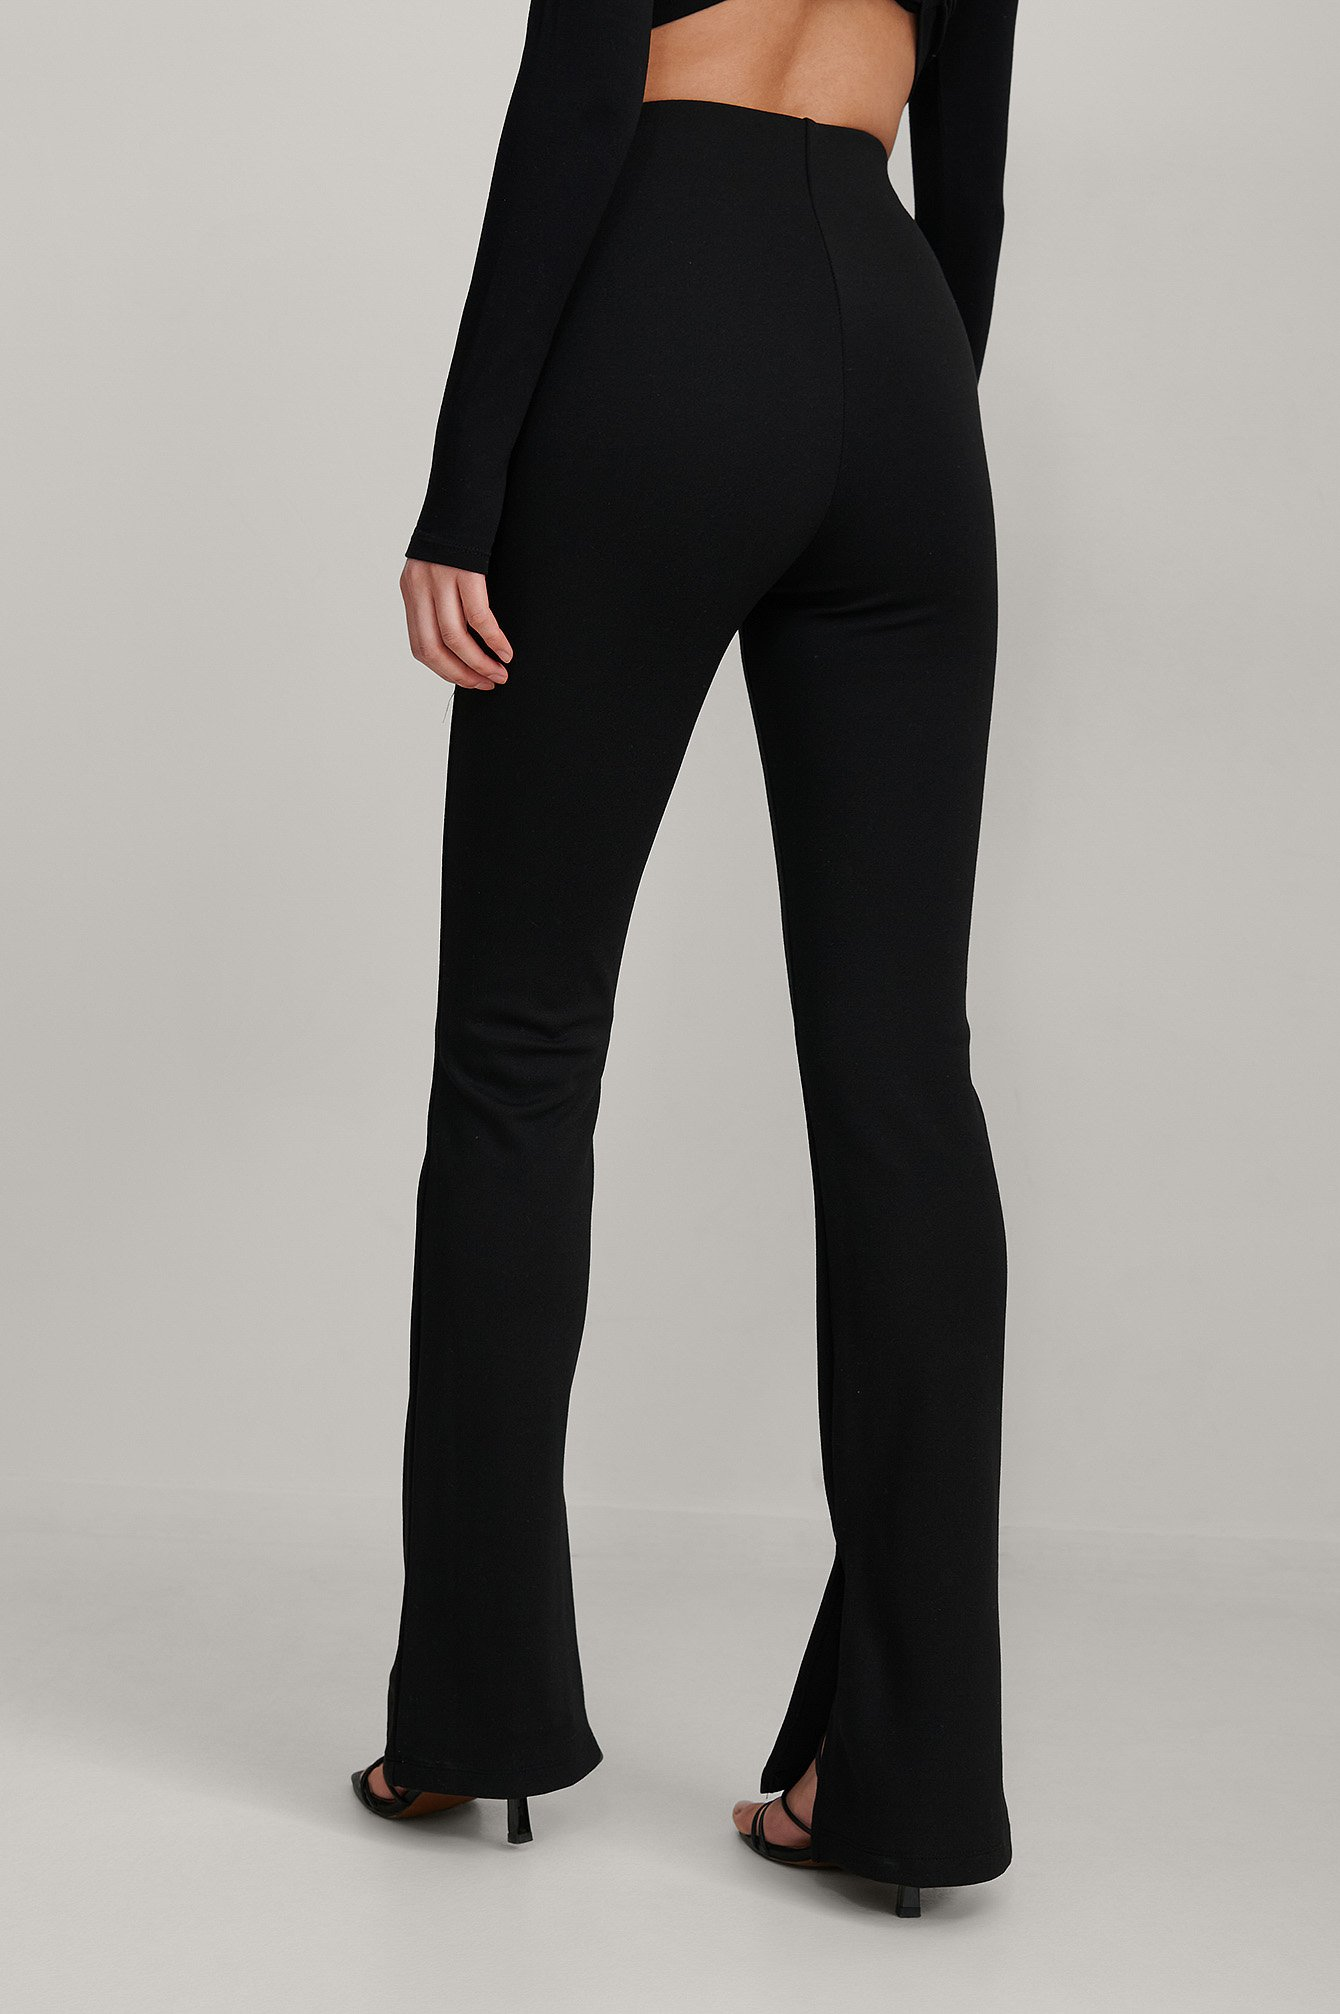 Black Seam Detail Slit Pants